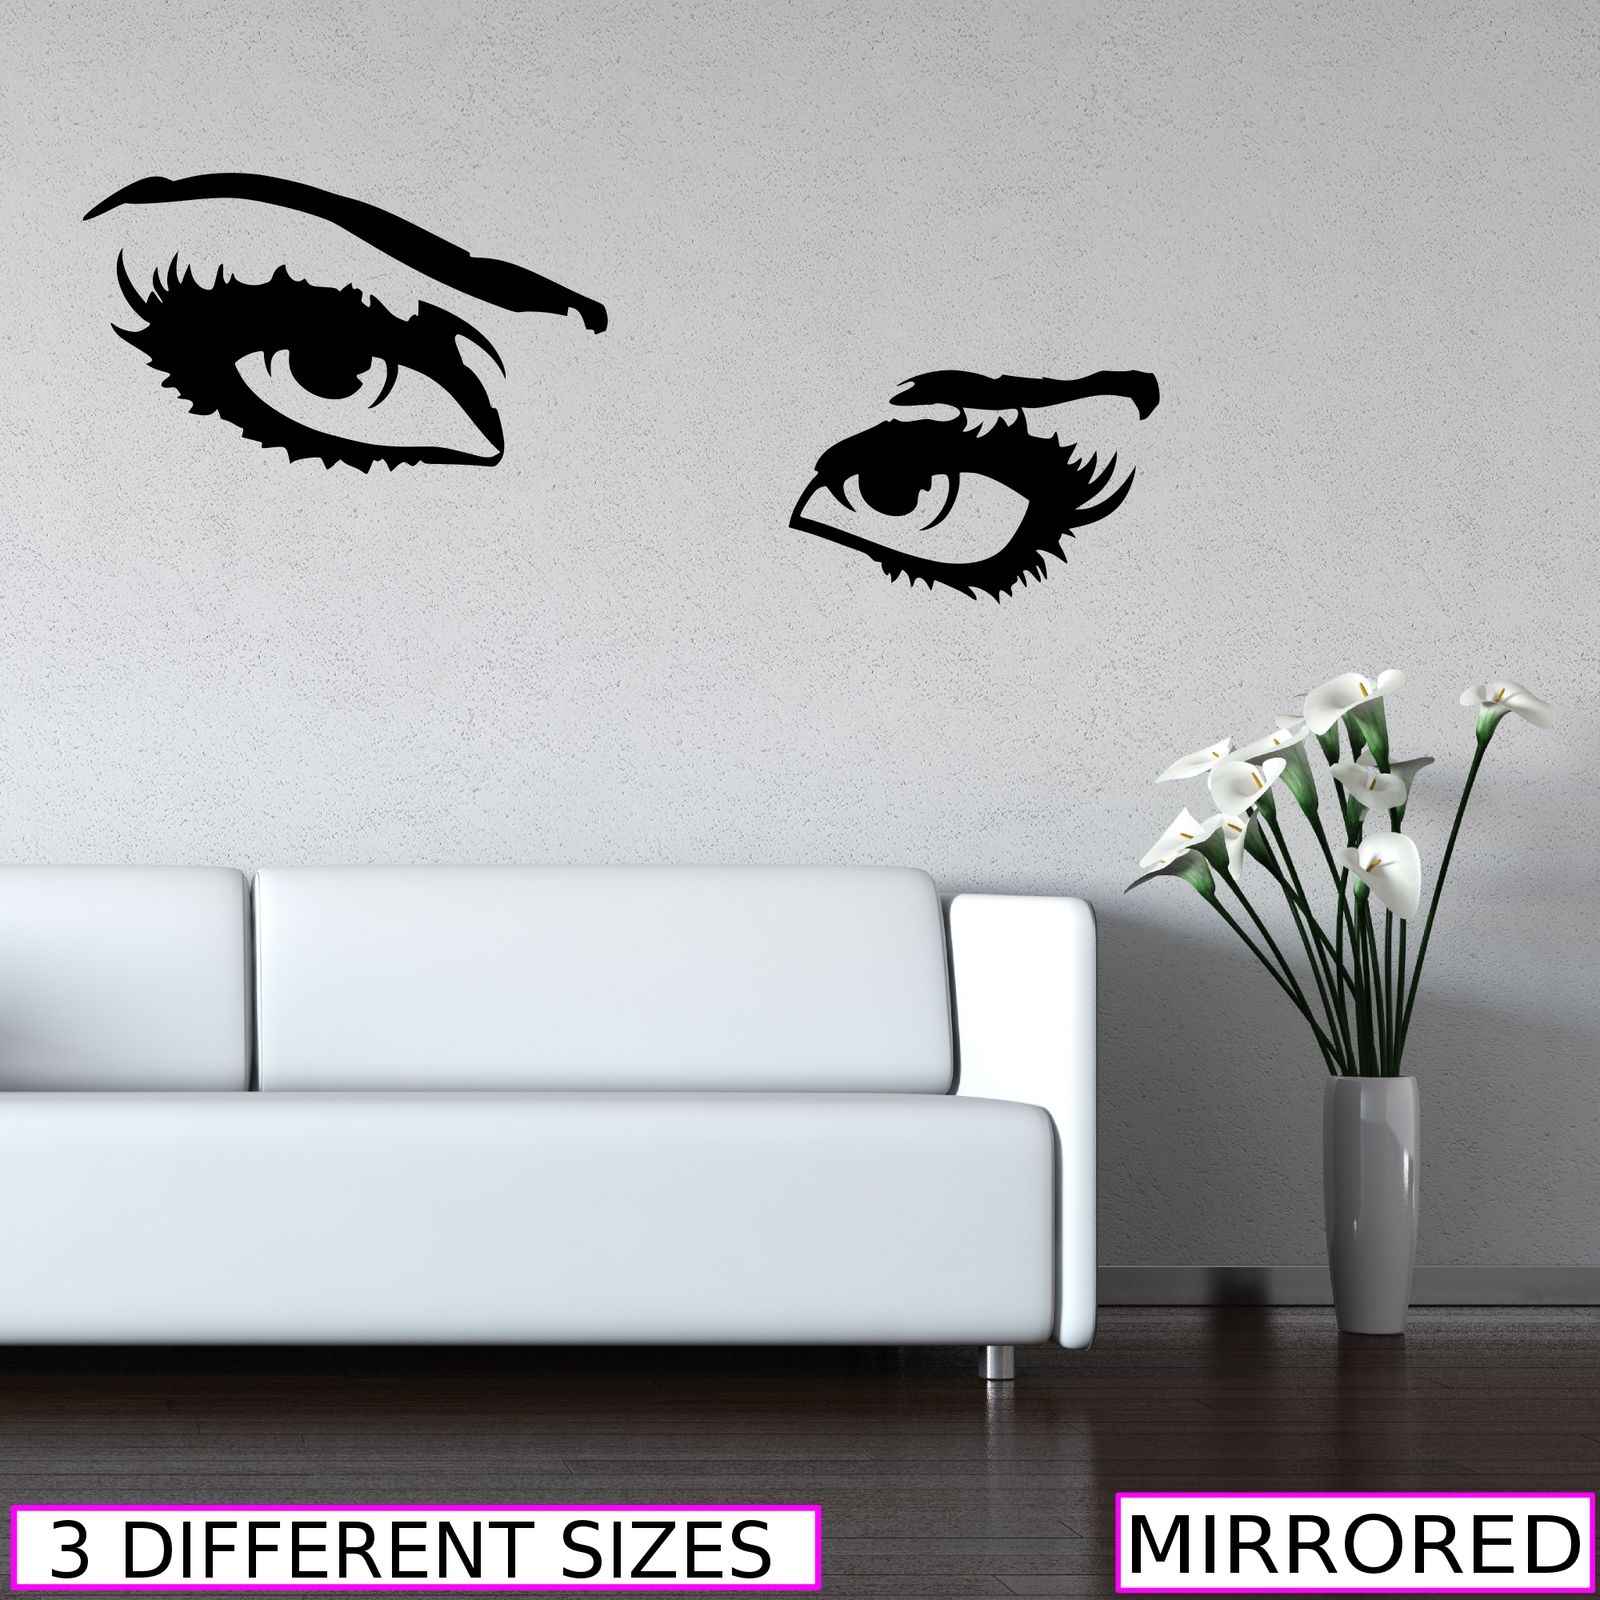 Wall Art Stickers Eyes : Sexy eyes look vinyl wall art stickers decals murals